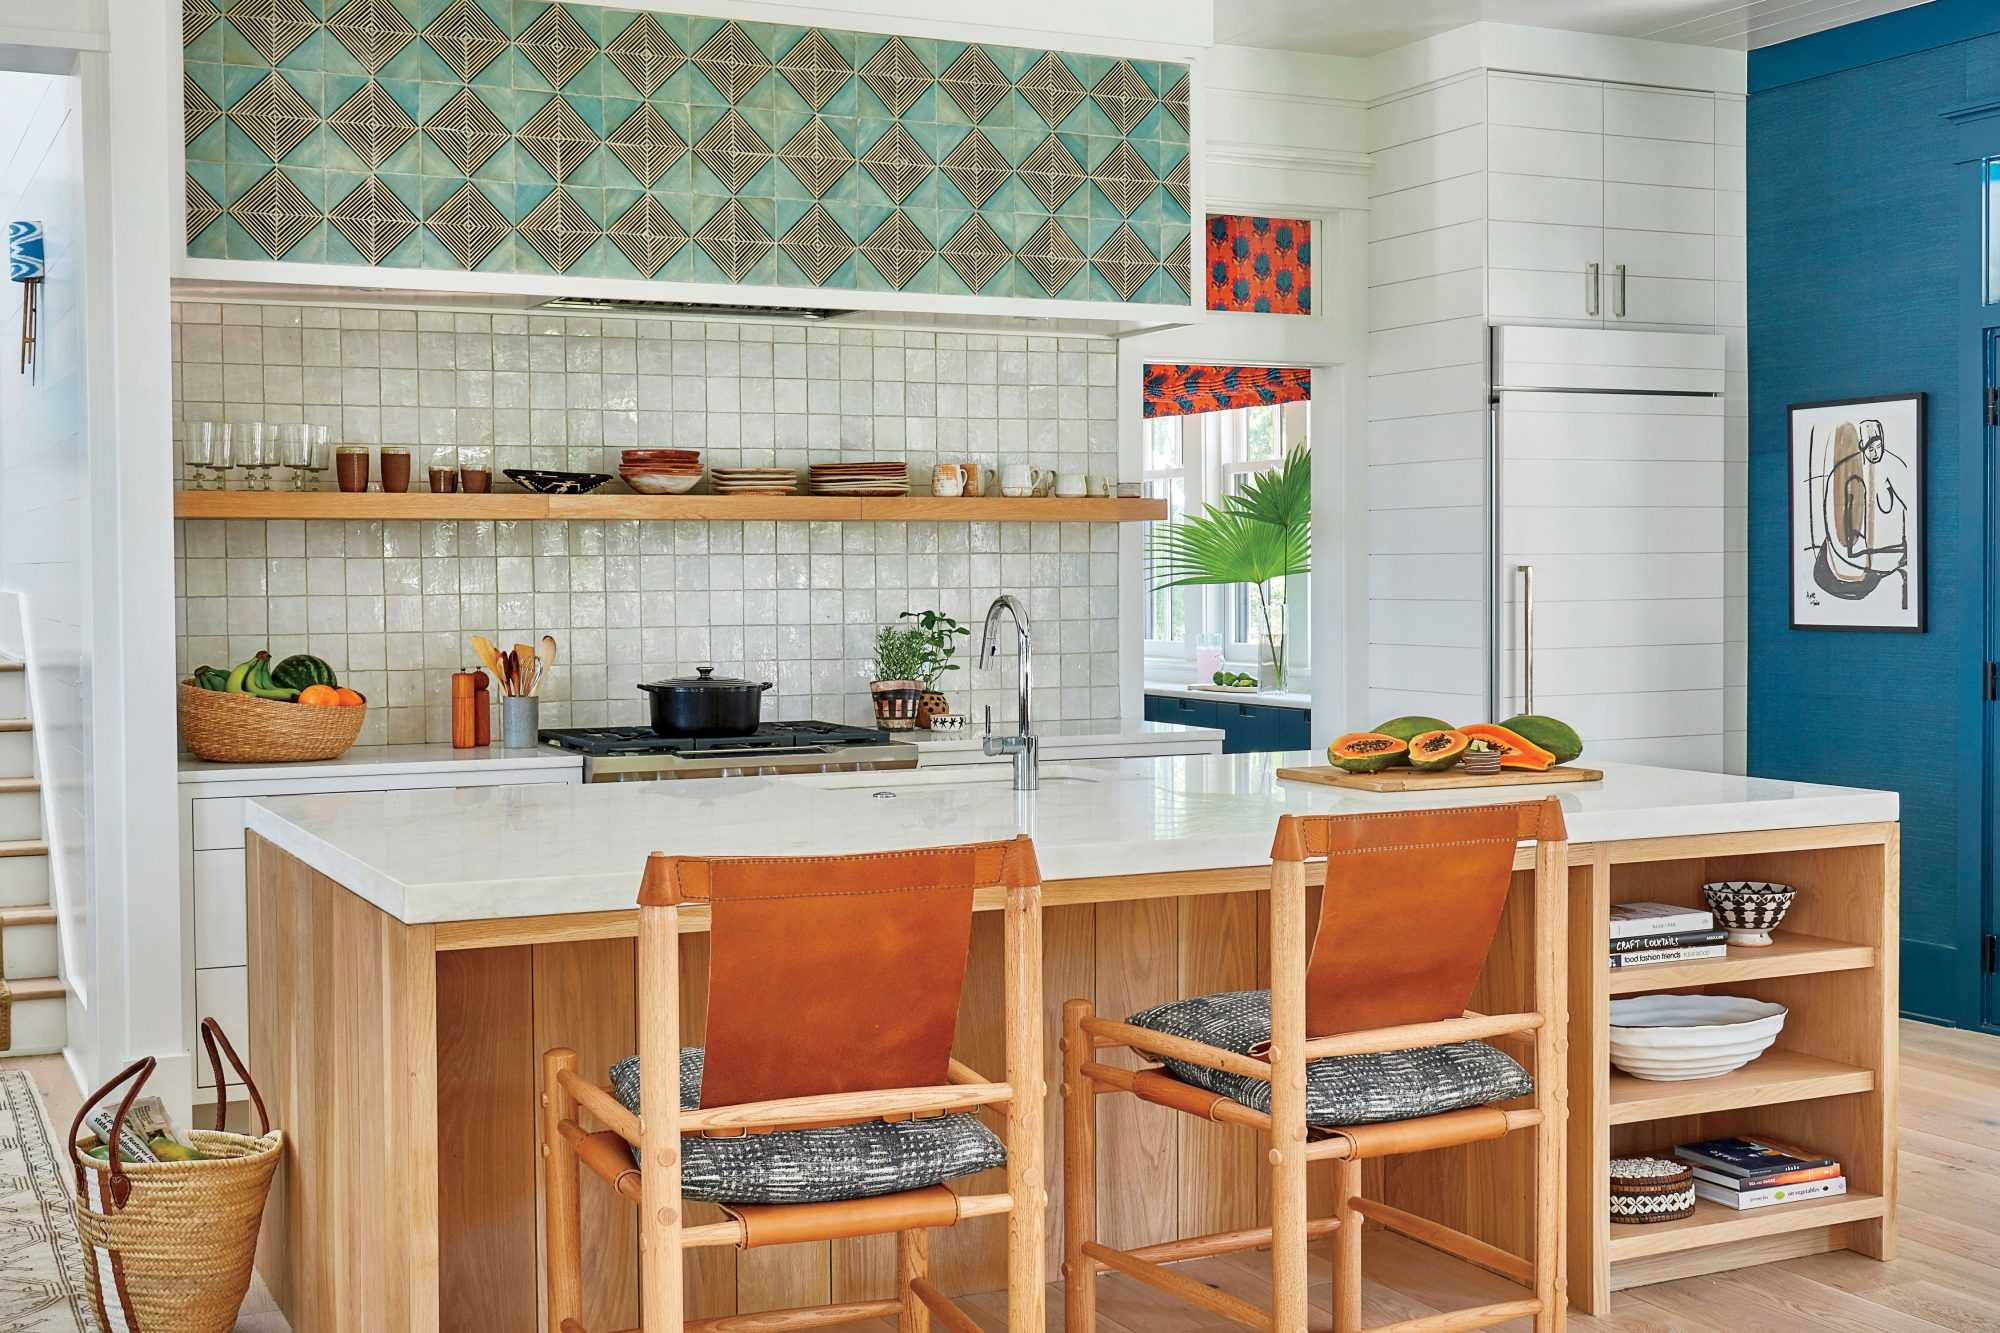 6 Kitchens That Make a Strong Case for Open Shelving